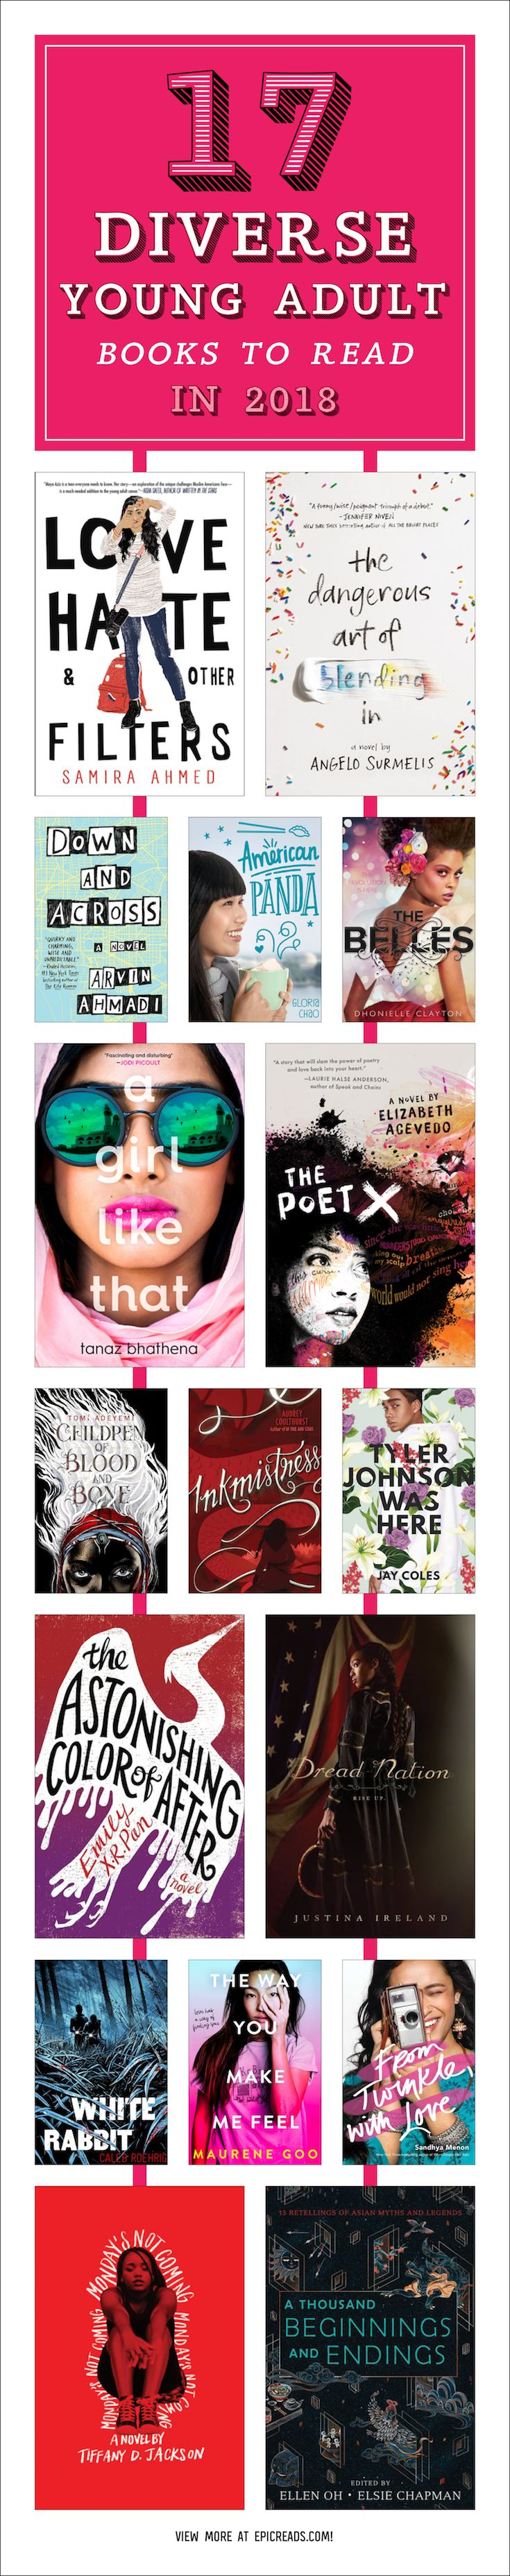 From the incredible synopses to the stunning covers with people of color to the amazing authors attached, we are so excited for these diverse YA books!